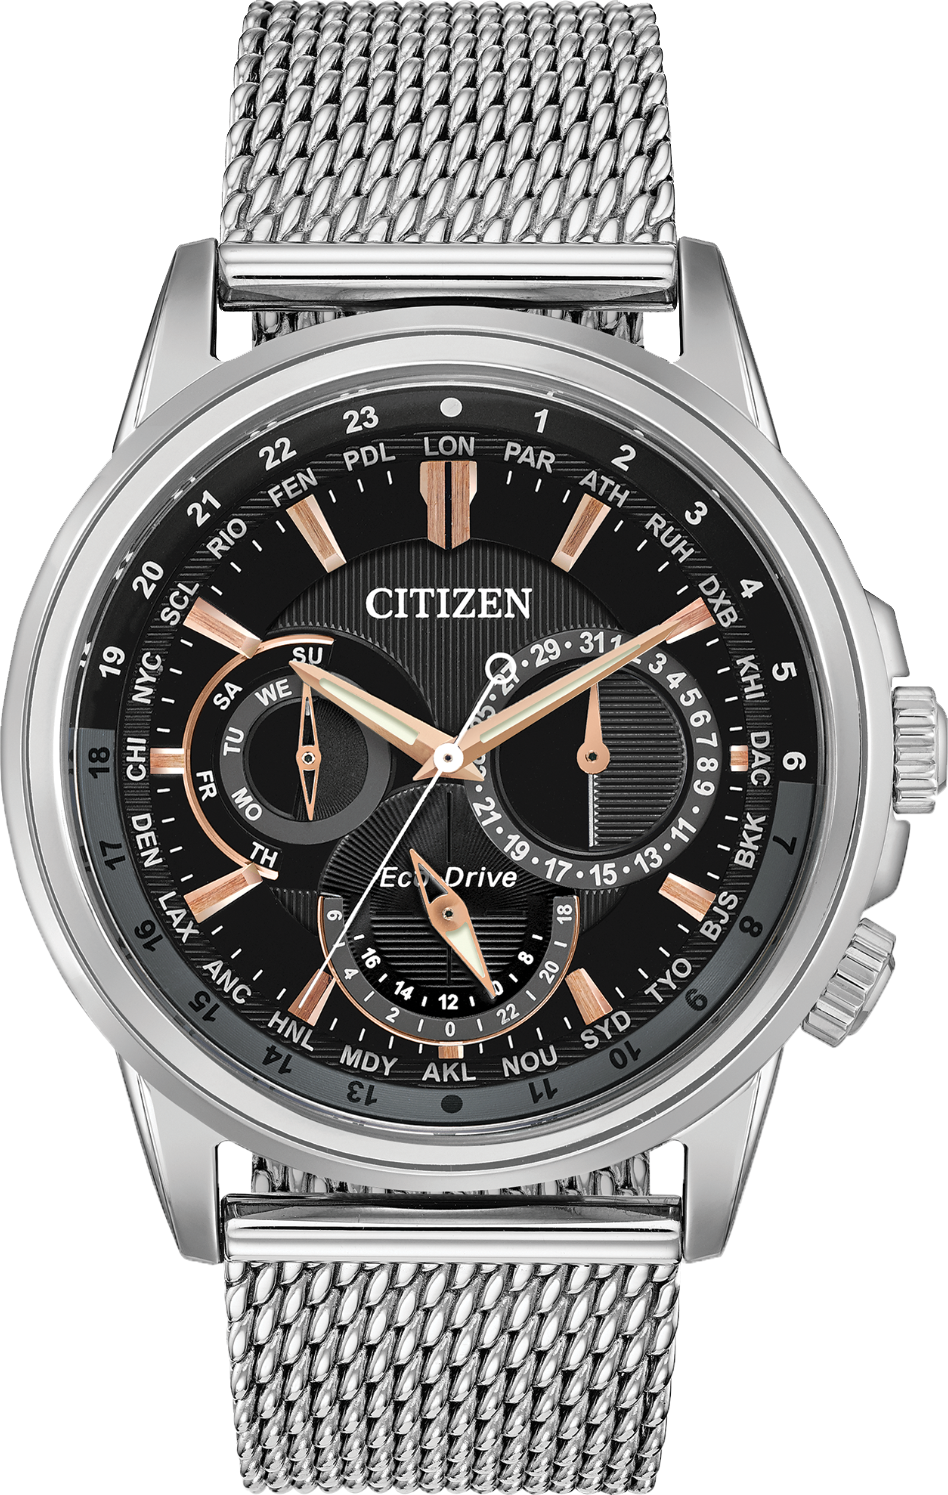 Citizen Calendrier World Time Black Watch 44mm